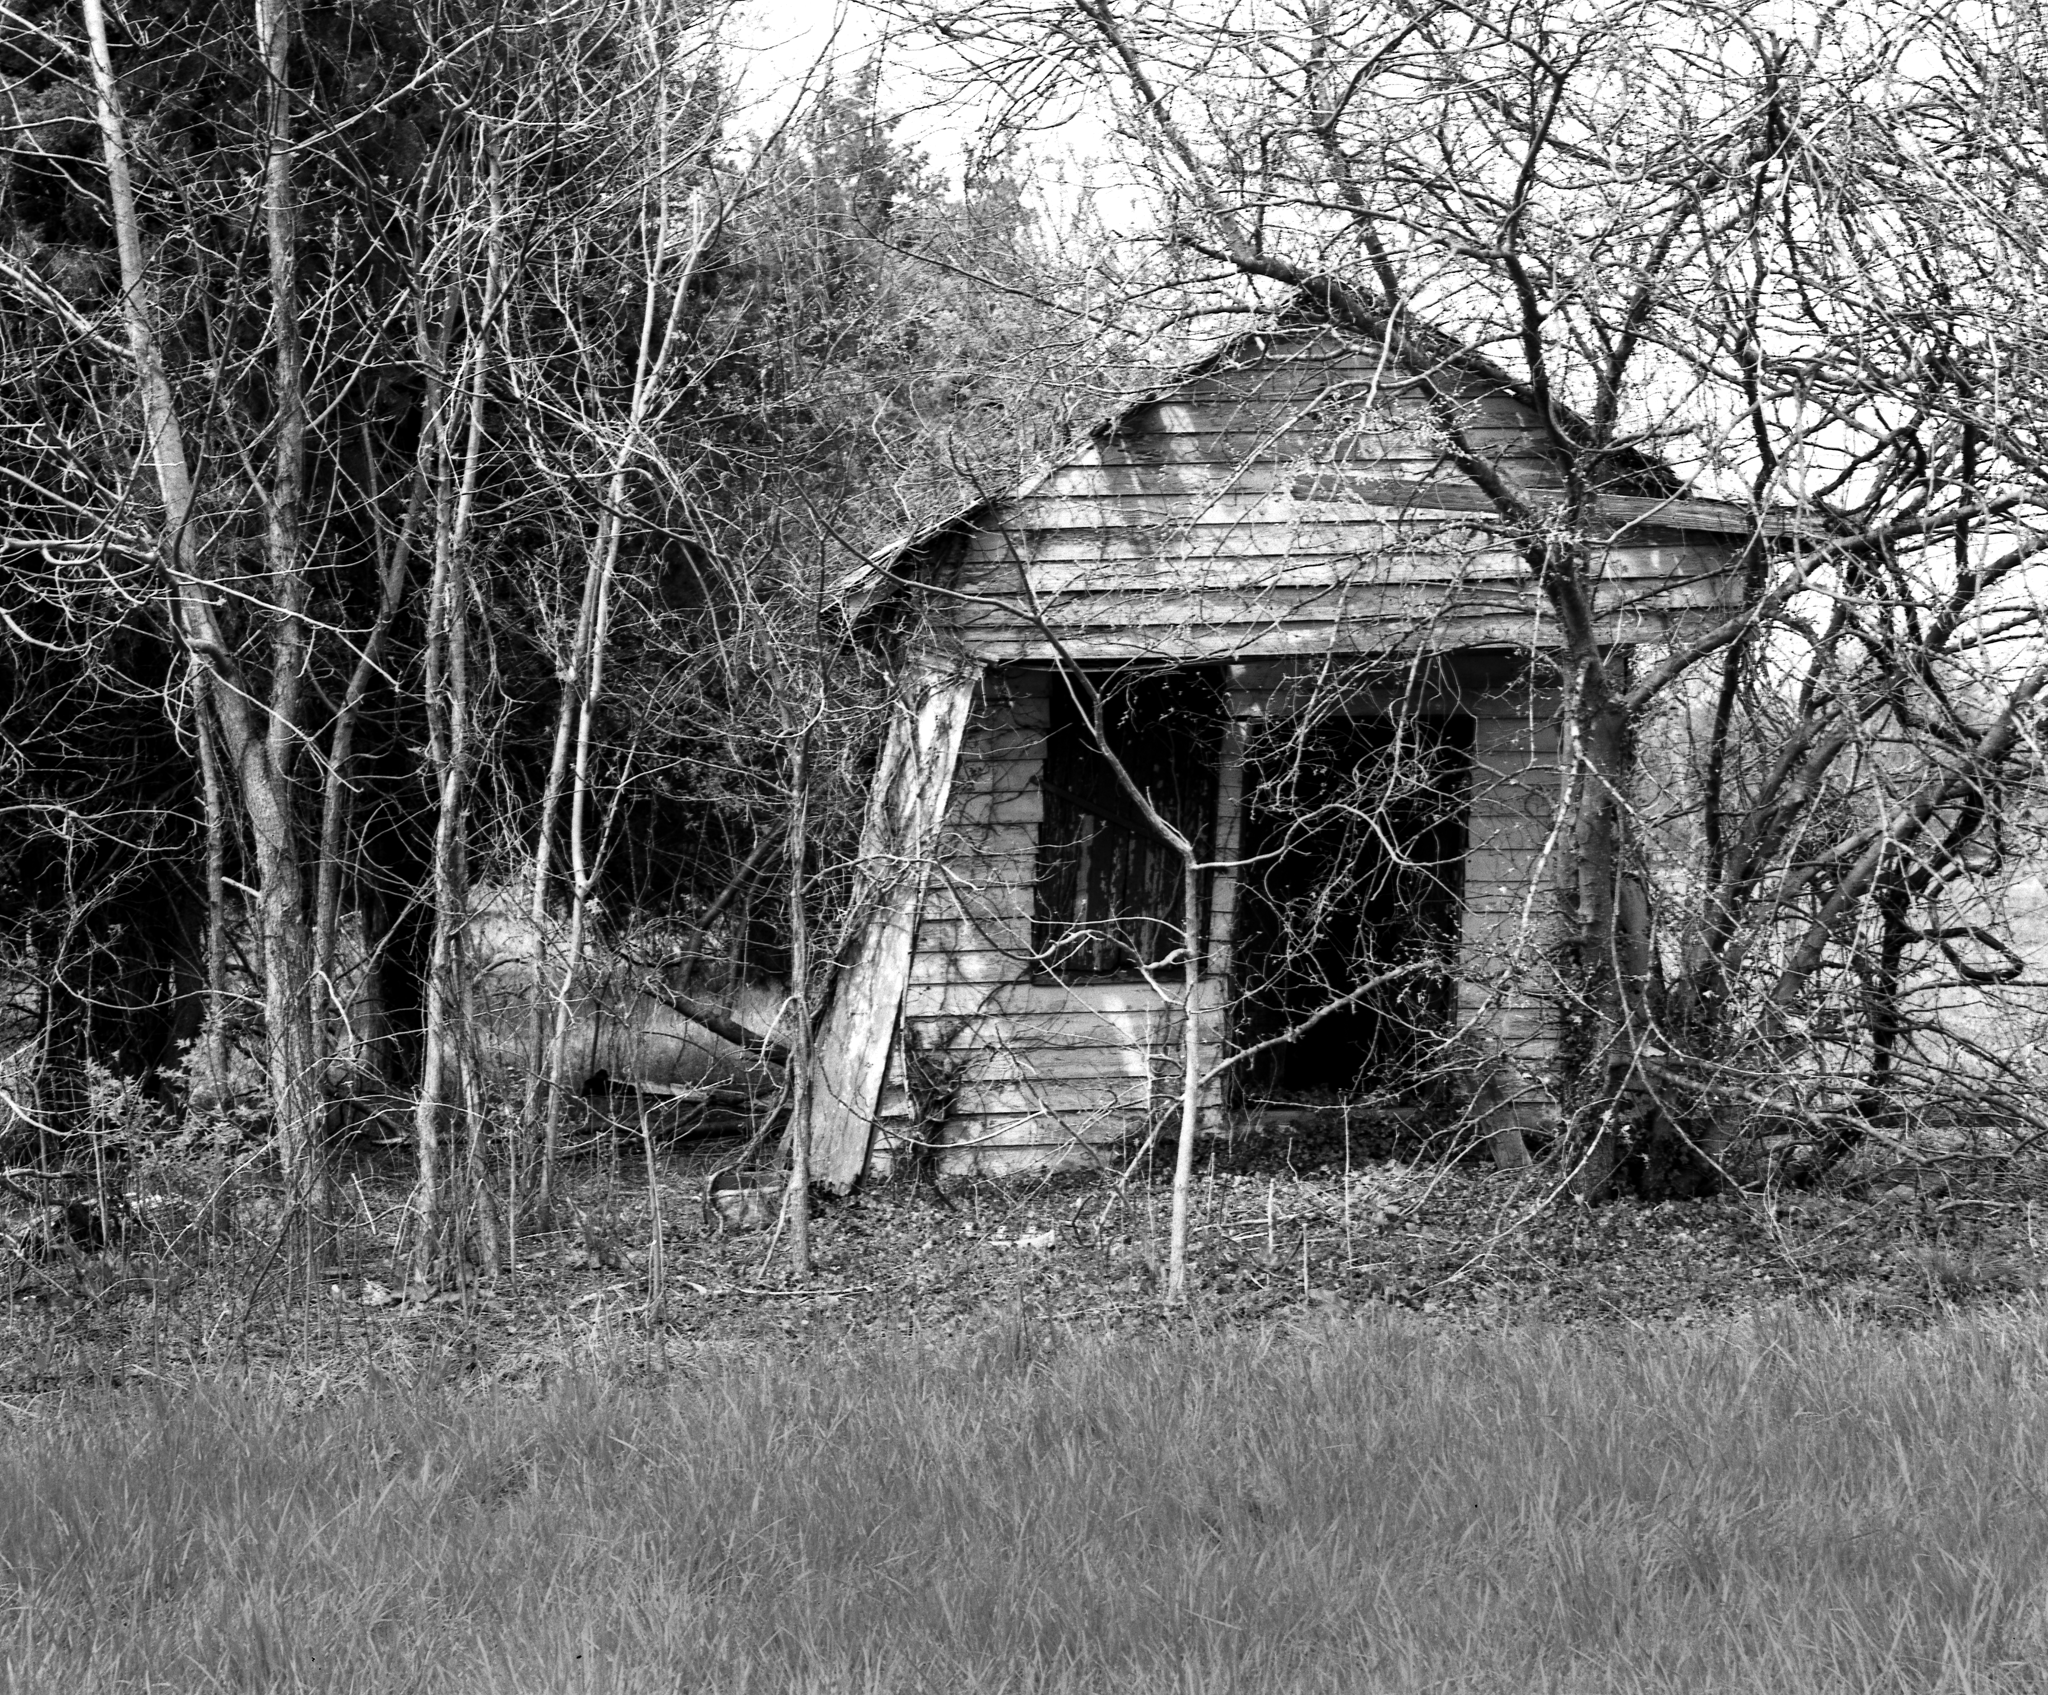 4x5_for_365_project_0110_MDEasternShore_SHack.png